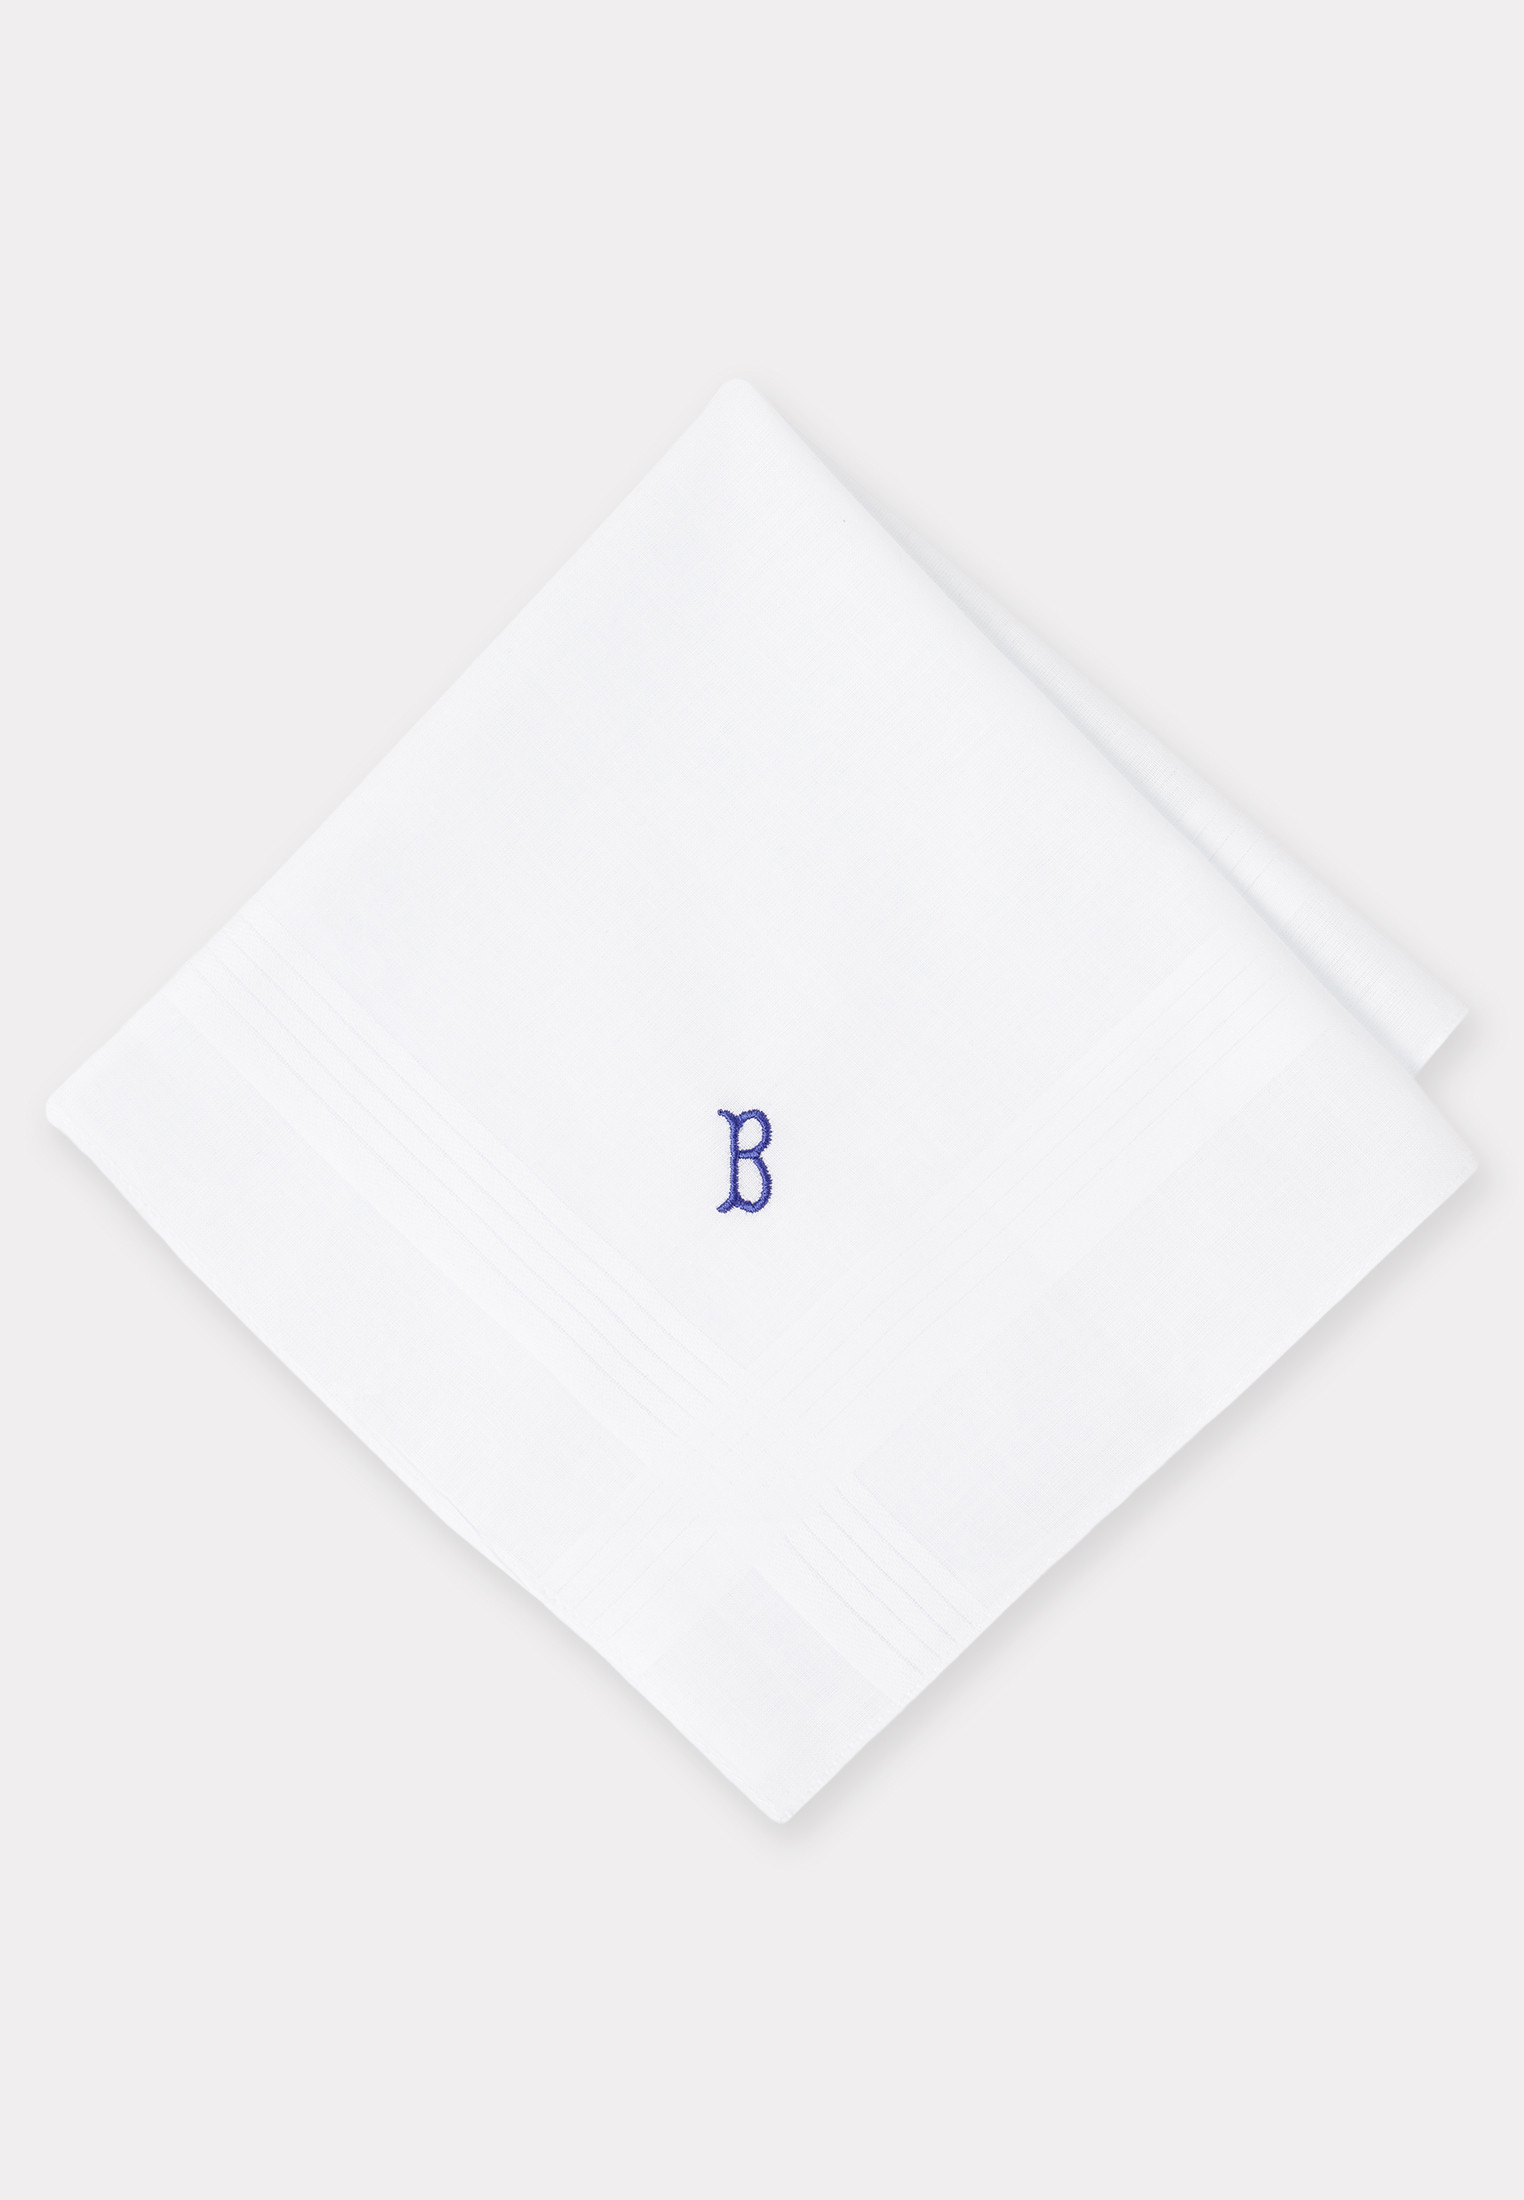 Handkerchief Monogrammed with Initial 'B' - Presentation Pack of 3